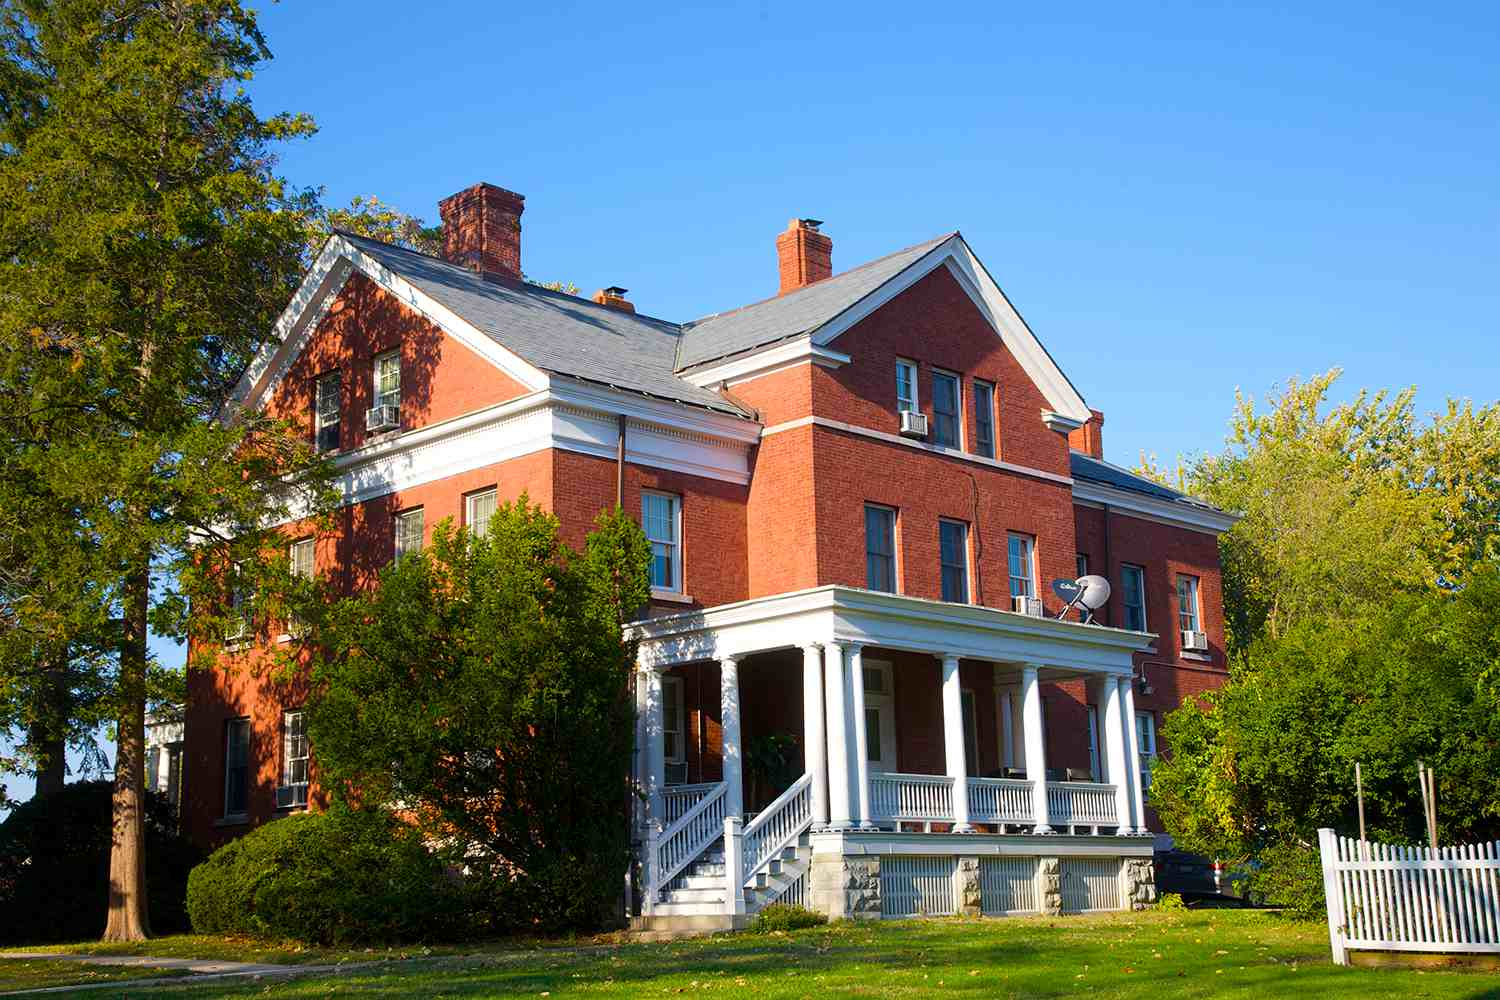 Red brick building with porch, Fort Totten